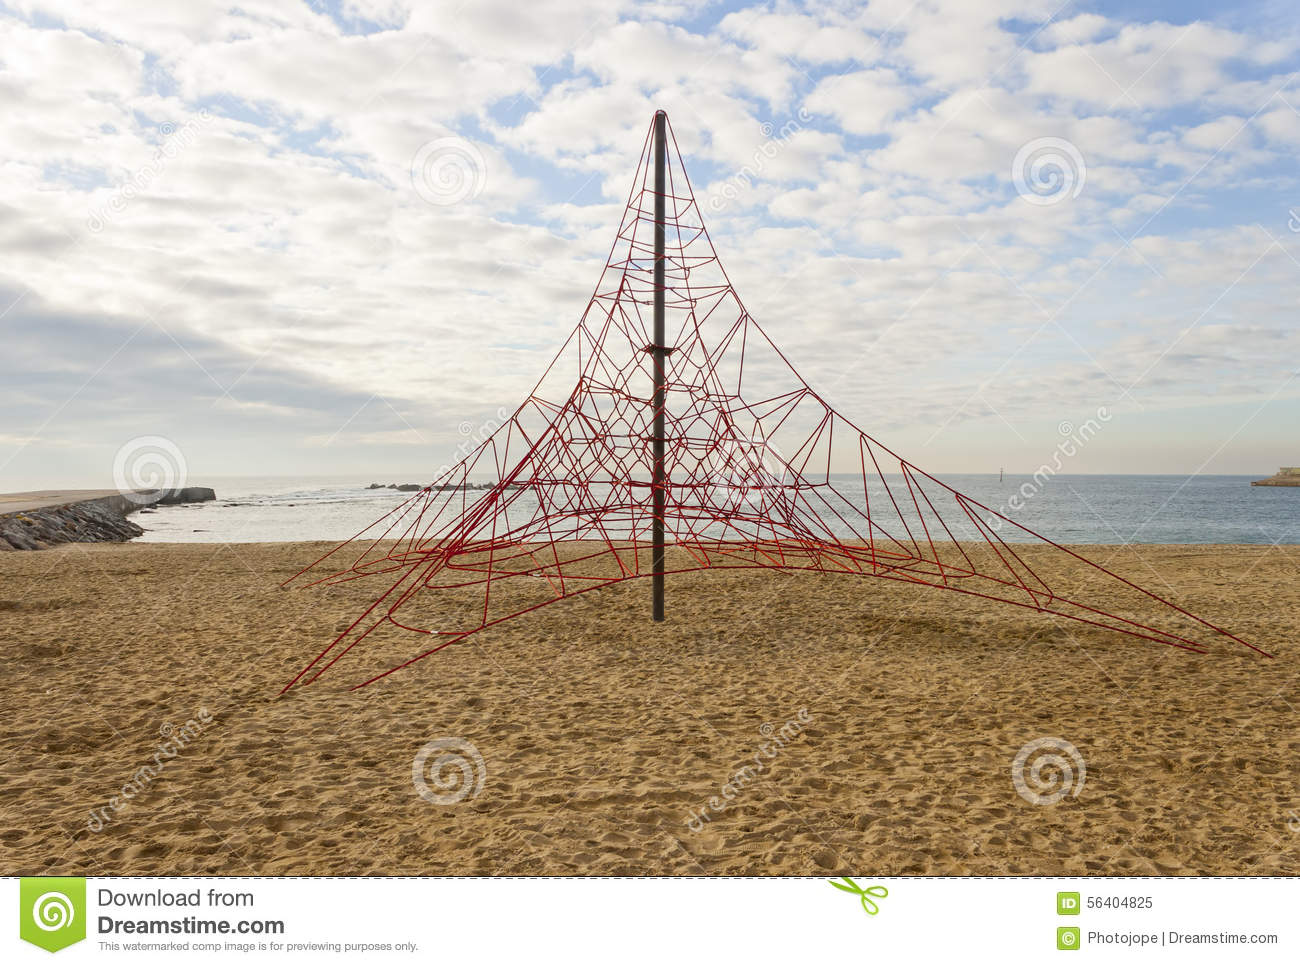 Rope Pyramid Playground In The Beach Stock Image - Image of